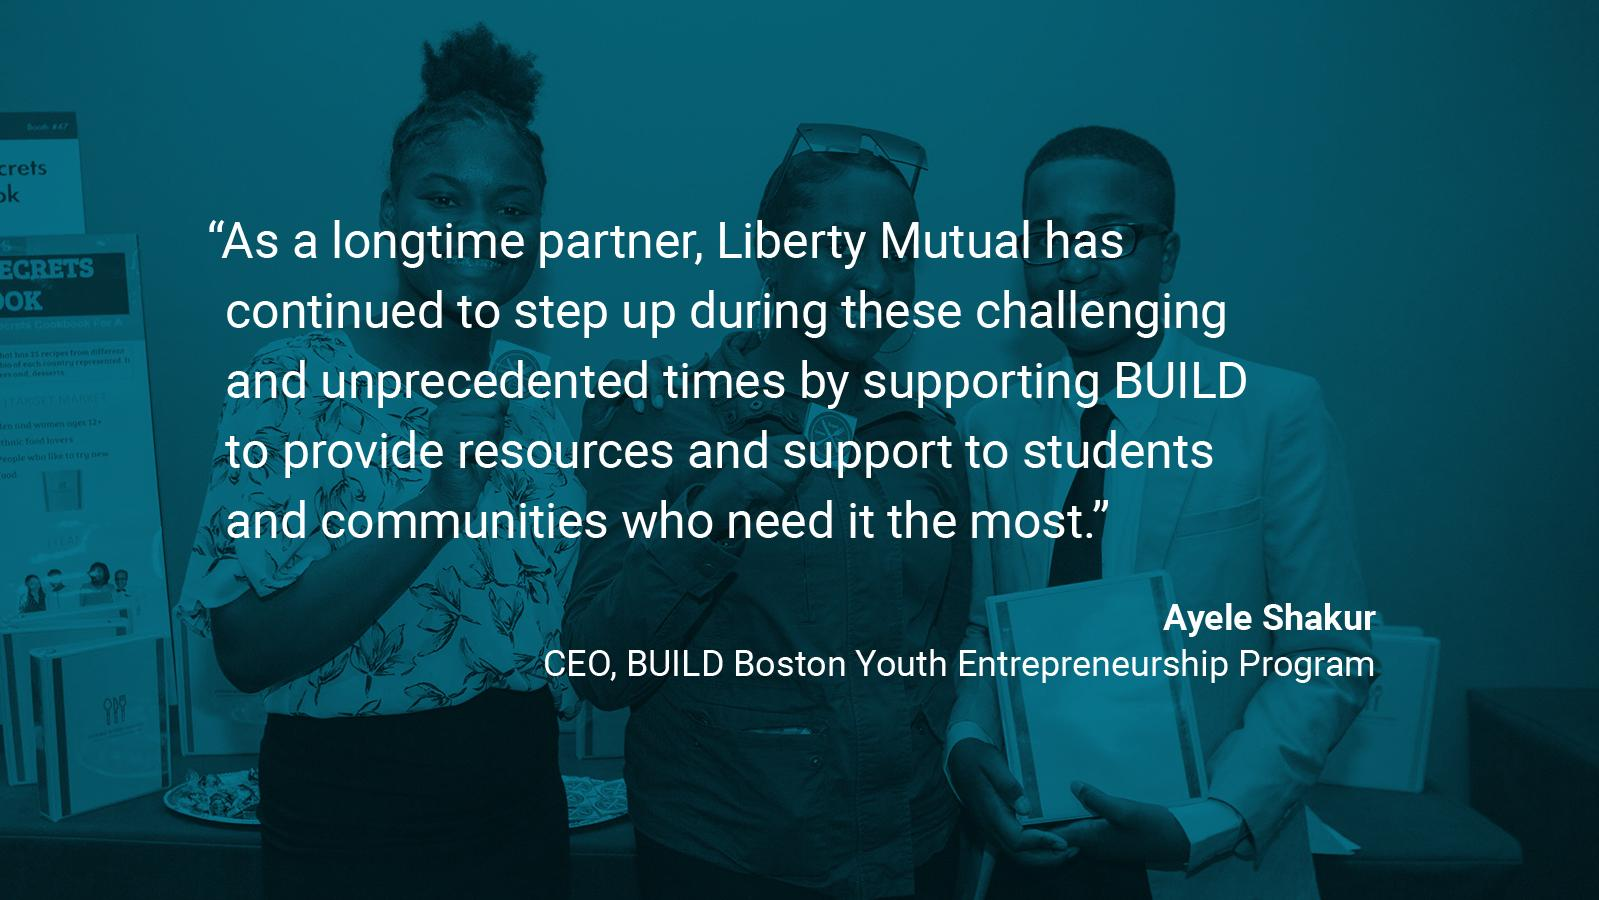 "(slide 3 of 4) Quote by: Ayele Shakur, CEO at Build Boston Youth Entrepreneurship Program: ""As a longtime partner, Liberty Mutual has continued to step up during these challenging and unprecedented times by supporting BUILD to provide resources and support to students and communities who need it the most."" ."